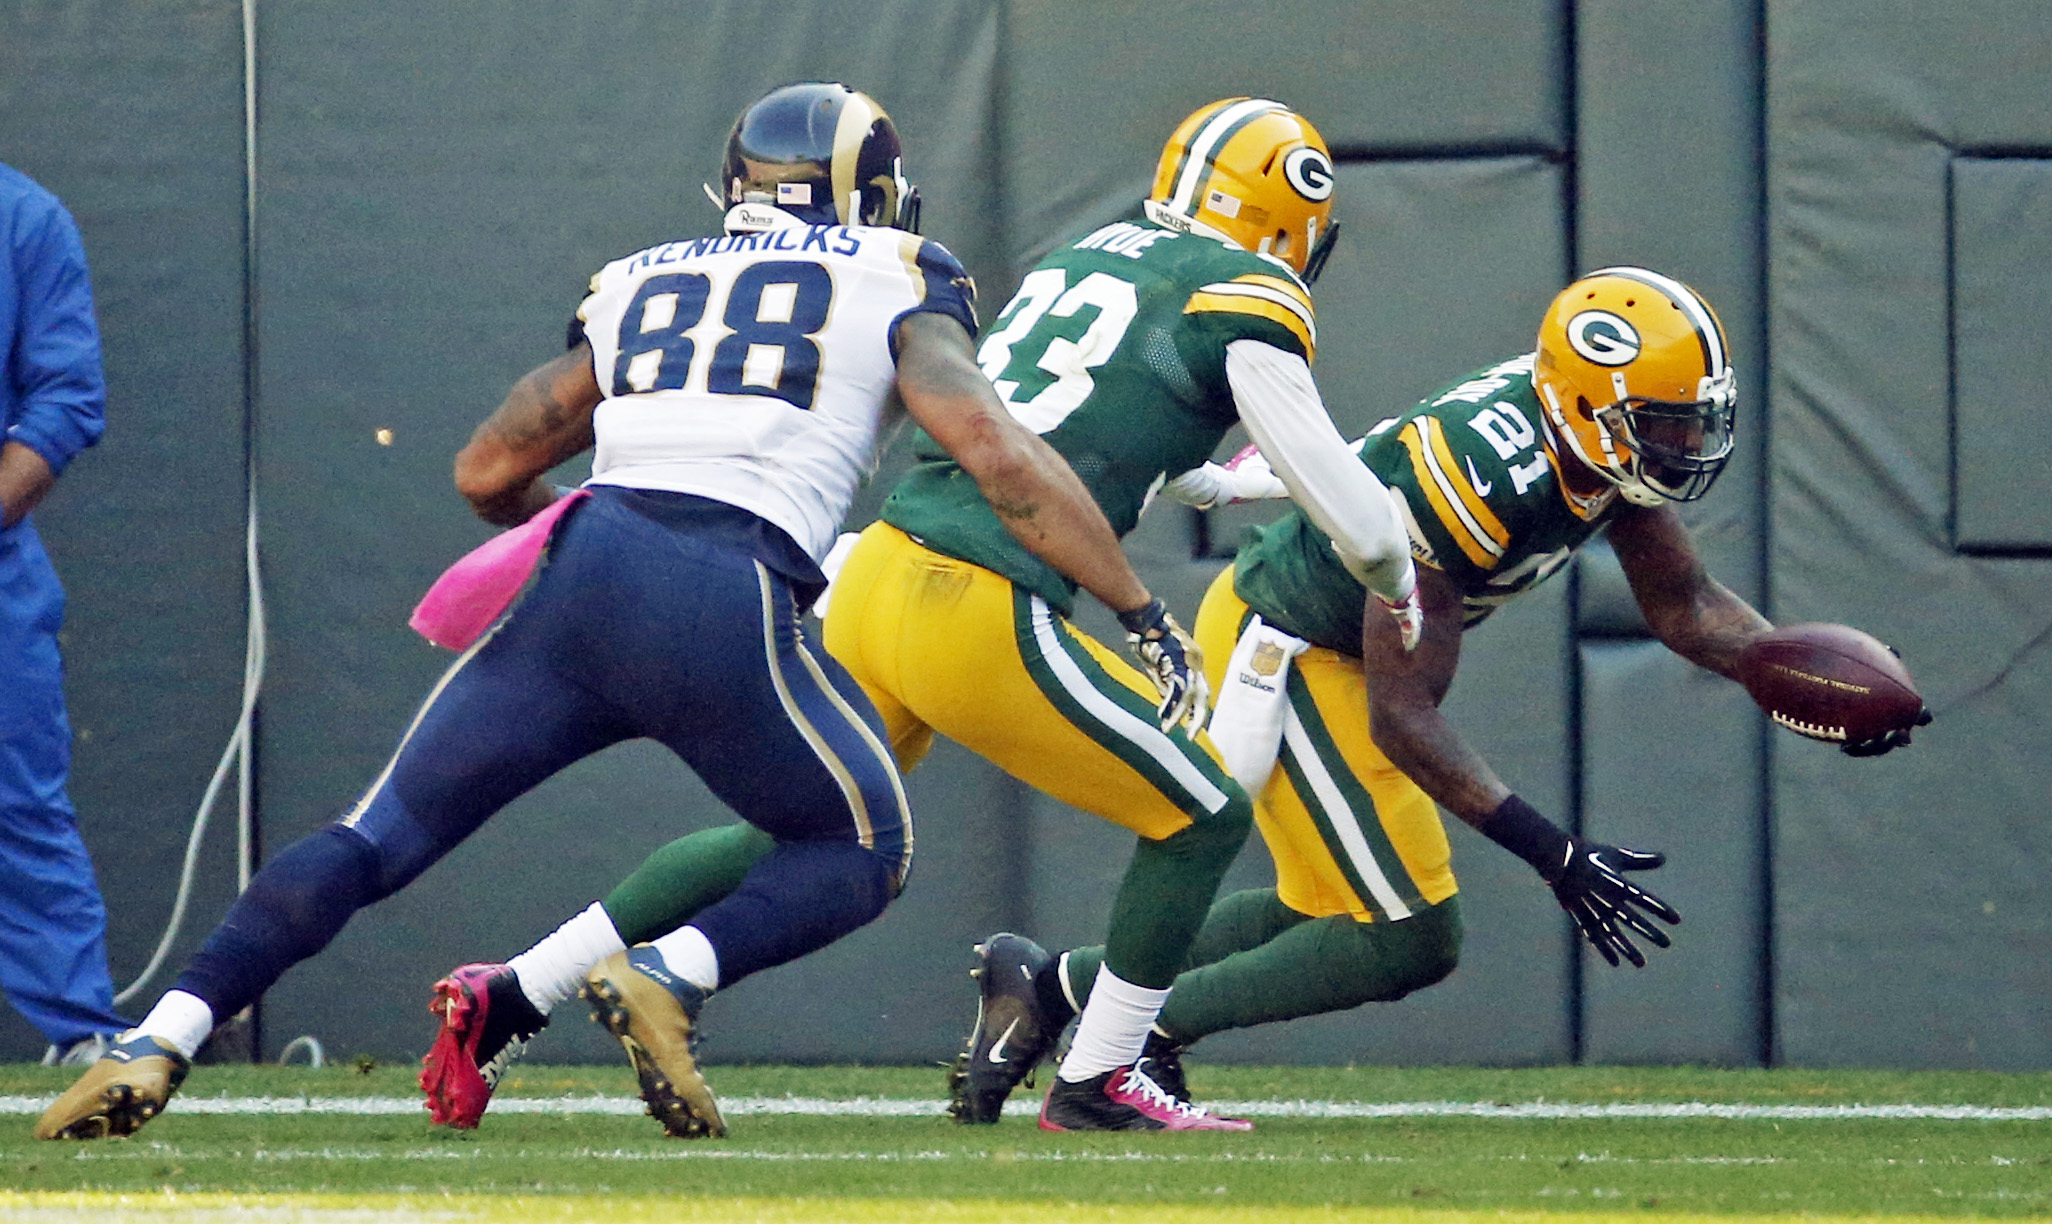 Green Bay Packers' Ha Ha Clinton-Dix (21) celebrates after intercepting a pass in the end zone during the second half an NFL football game against the St. Louis Rams Sunday, Oct. 11, 2015, in Green Bay, Wis. (AP Photo/Mike Roemer)